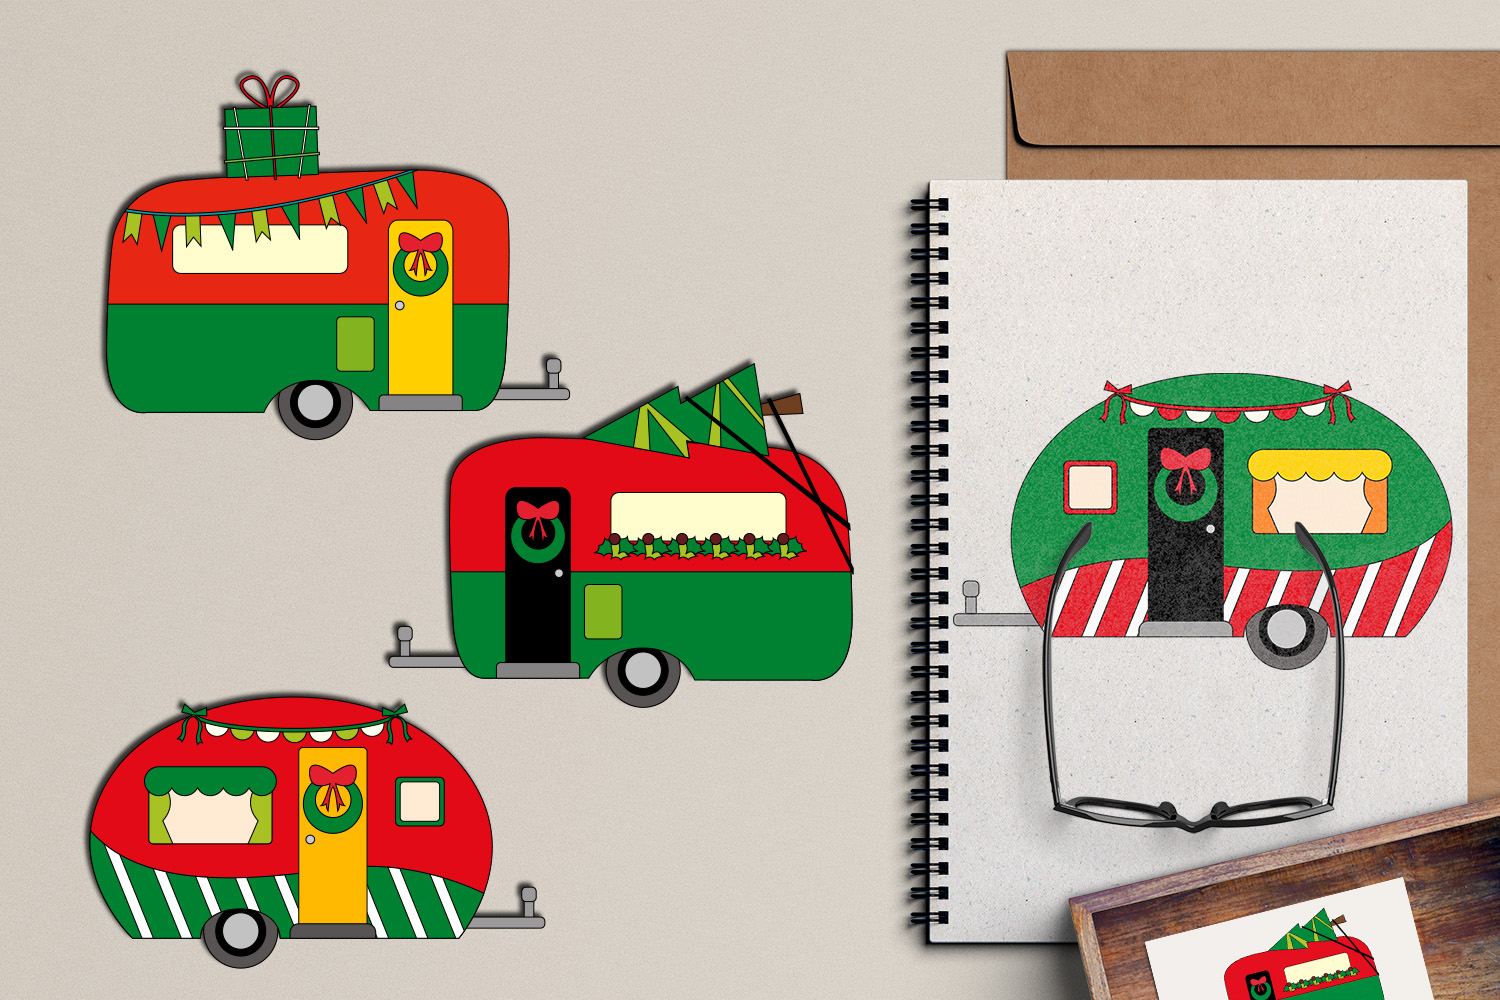 Christmas RV camper caravan clipart graphic illustrations.